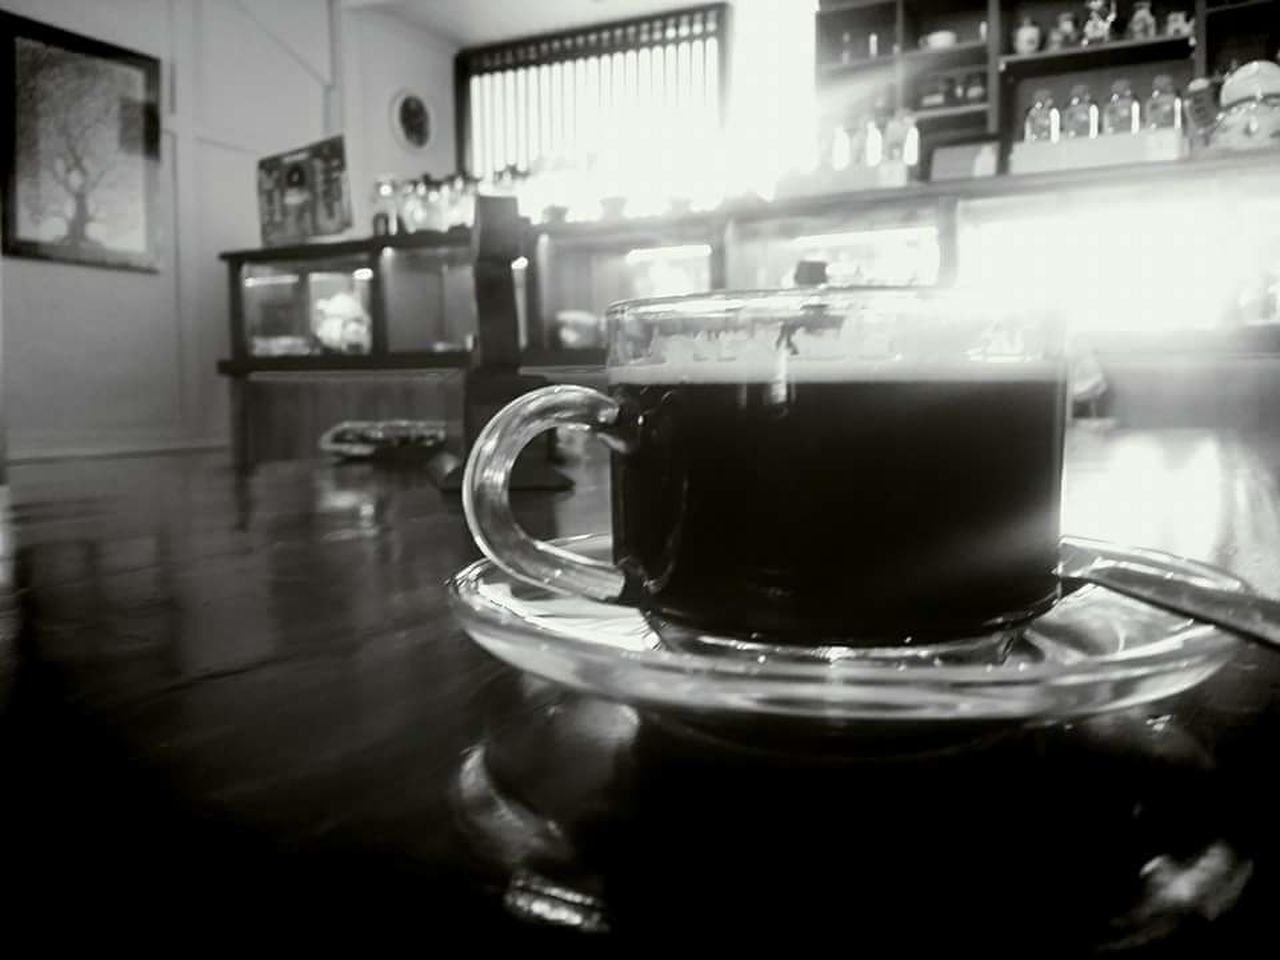 Blackcoffeeonly Relaxing Taking Photos Enjoying Life Kopitiam